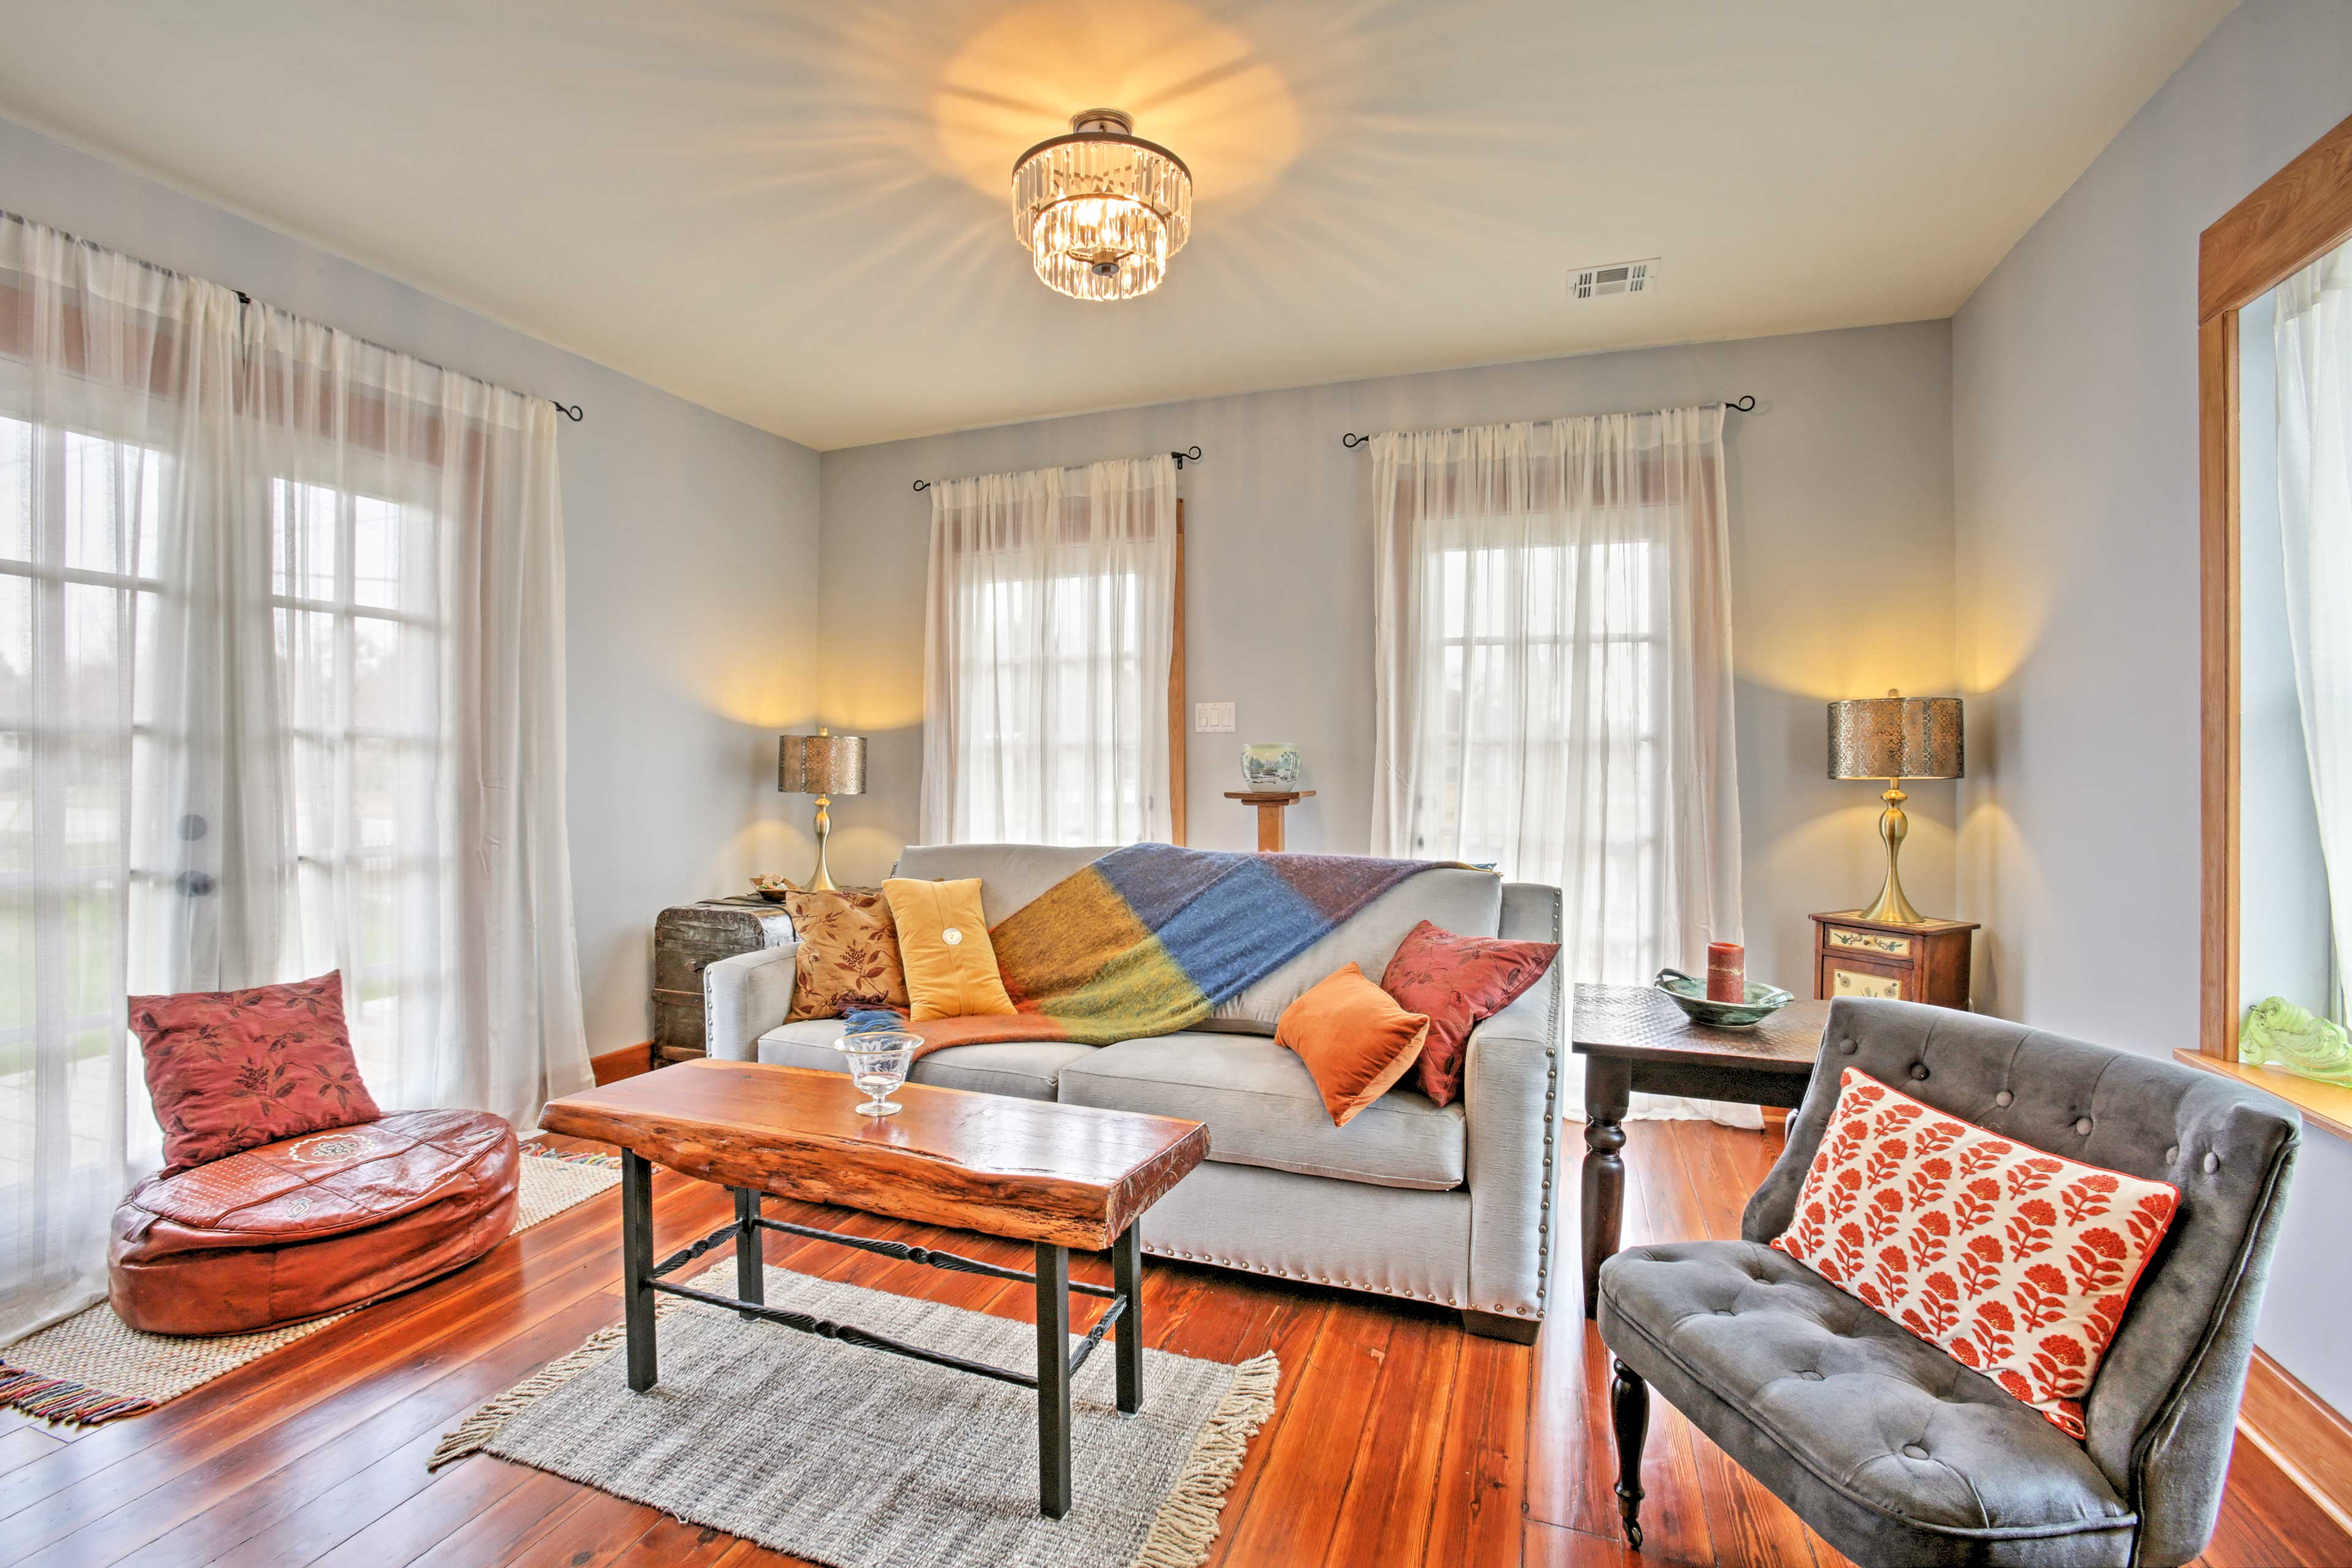 The living room is a great place to read a book or watch TV.